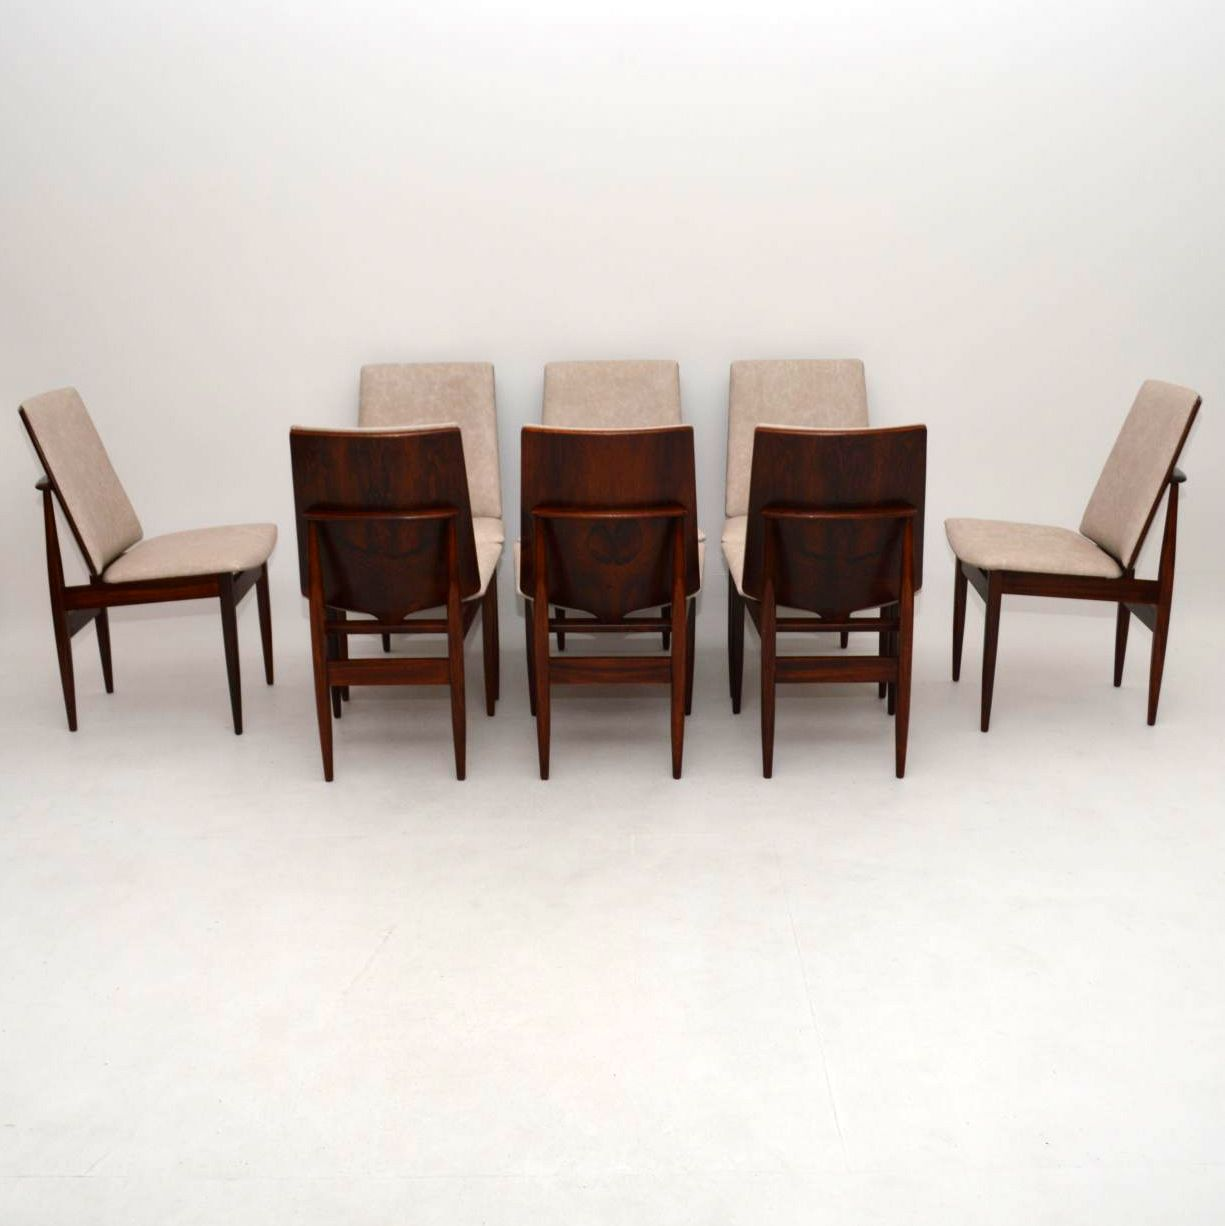 Set of 8 Retro Rosewood & Leather Dining Chairs Vintage 1960's